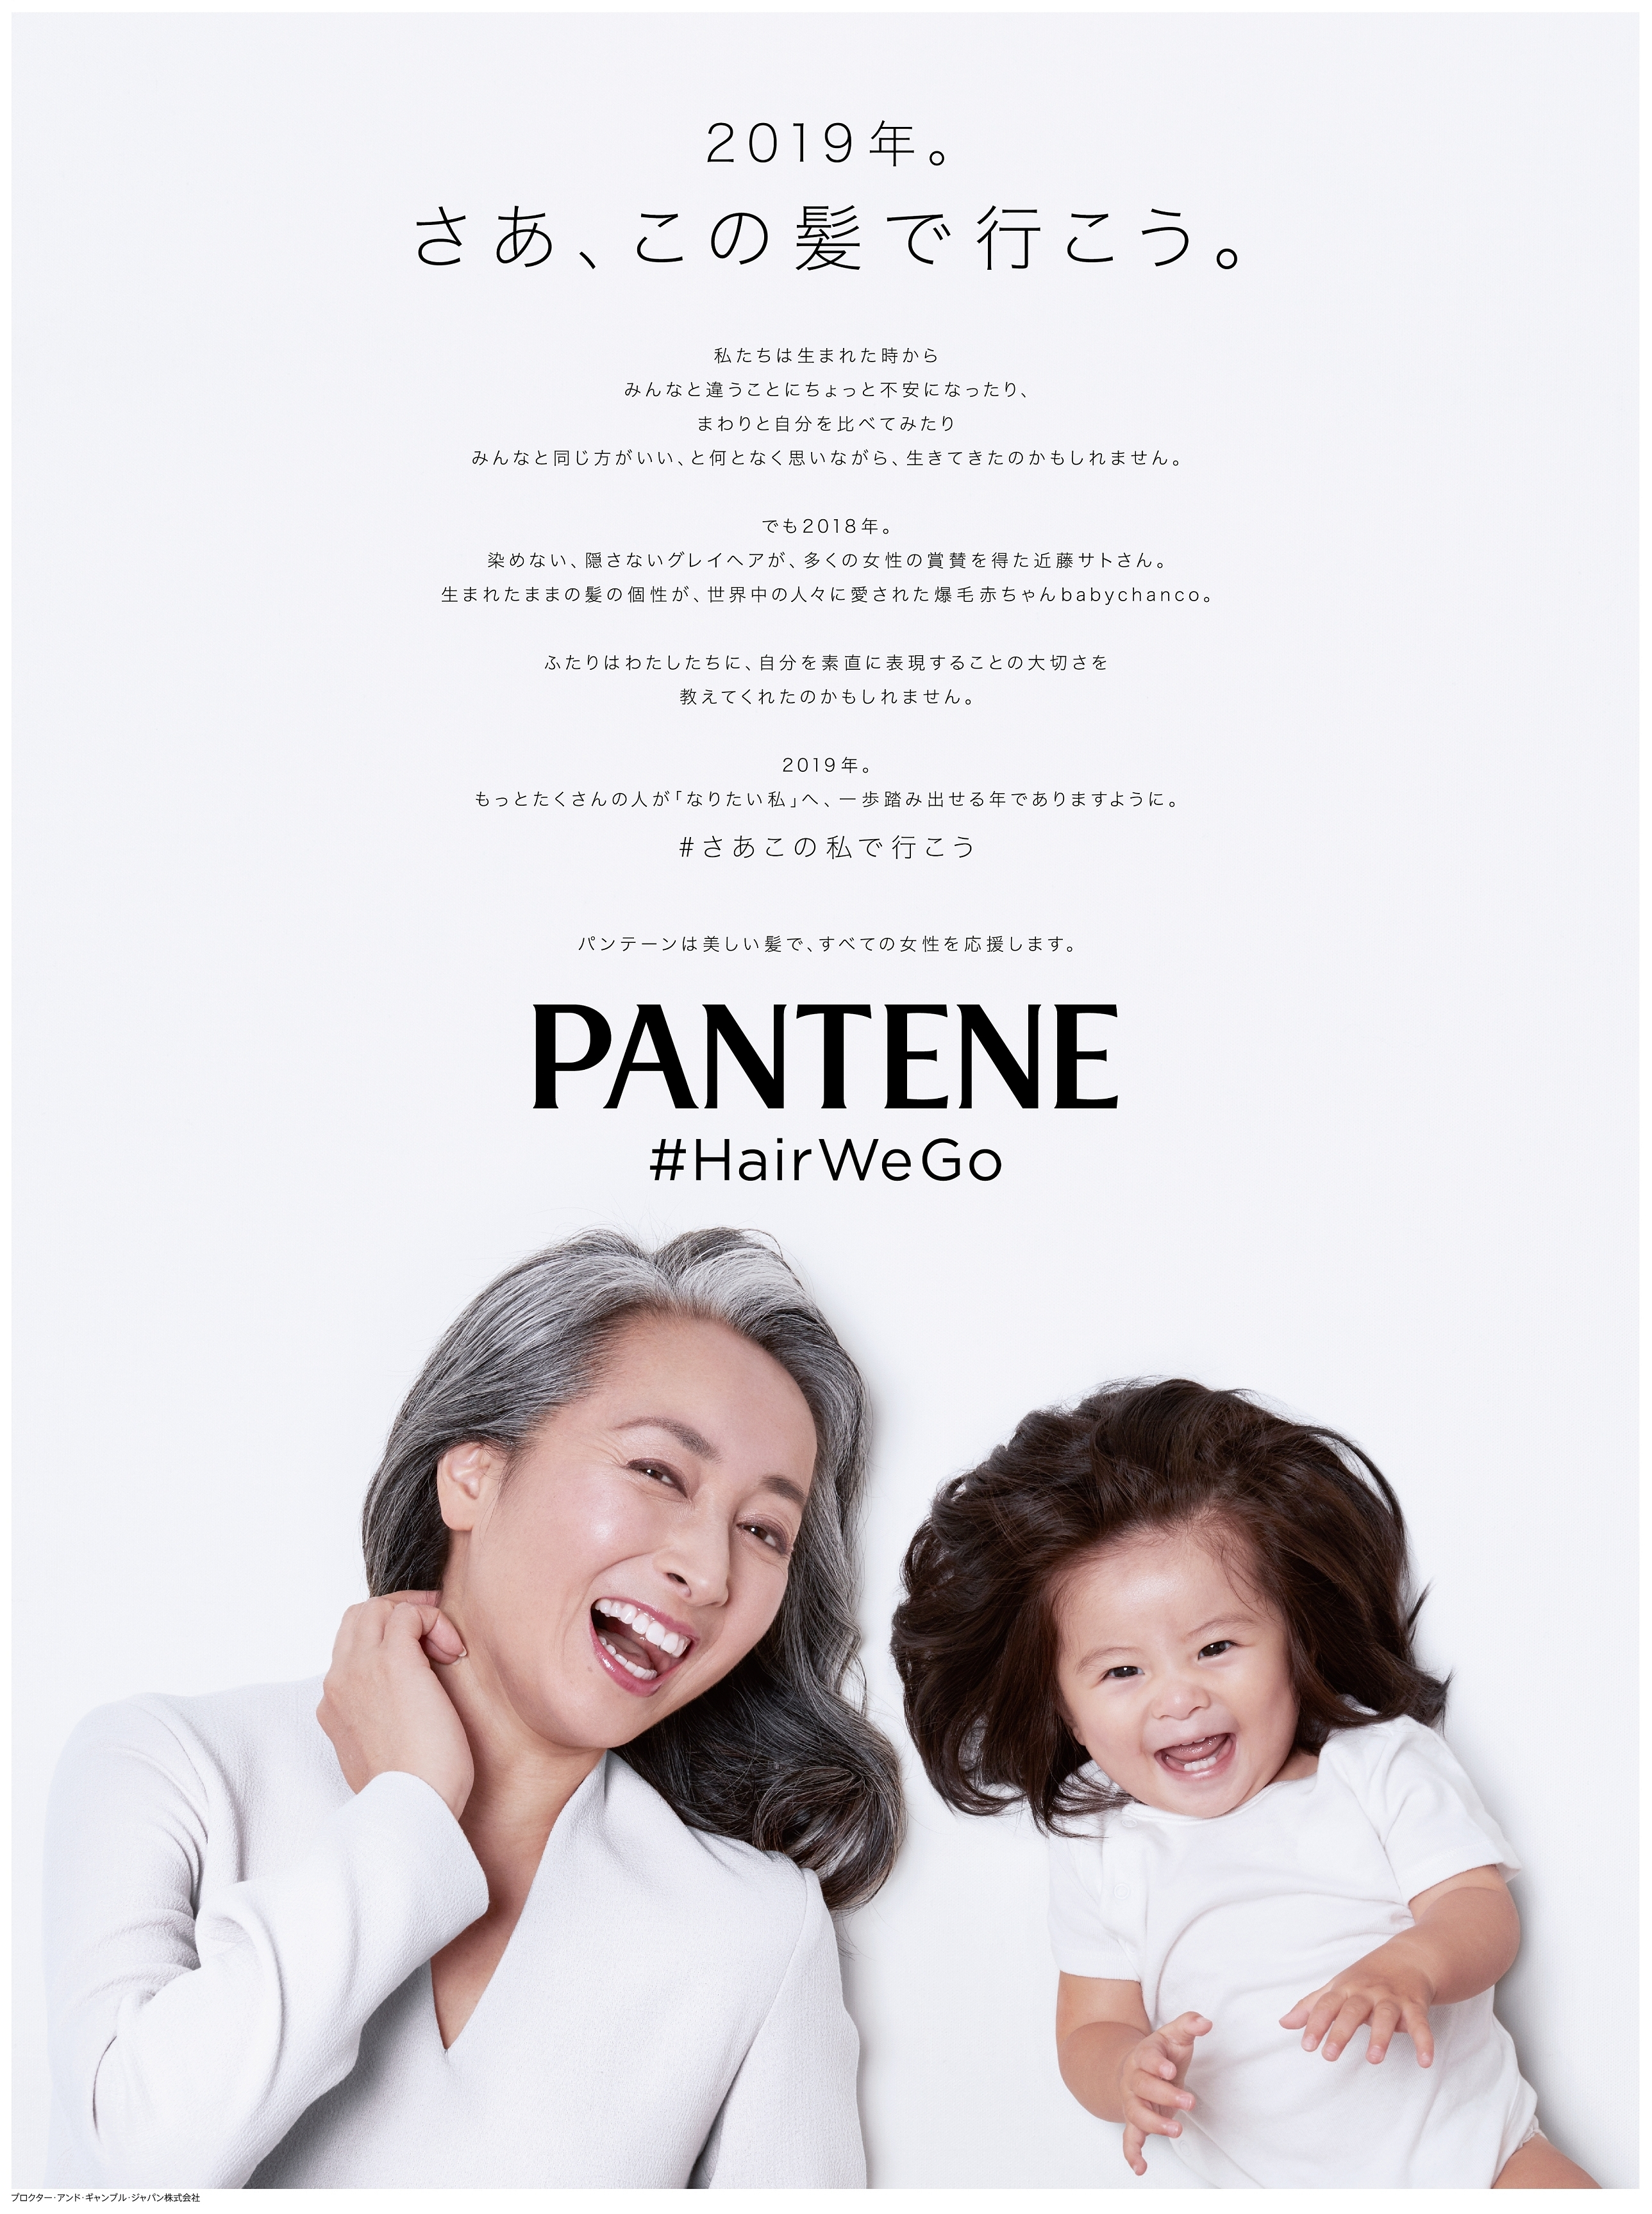 Baby Chanco Is Pantene S Newest Hair Model Huffpost Canada